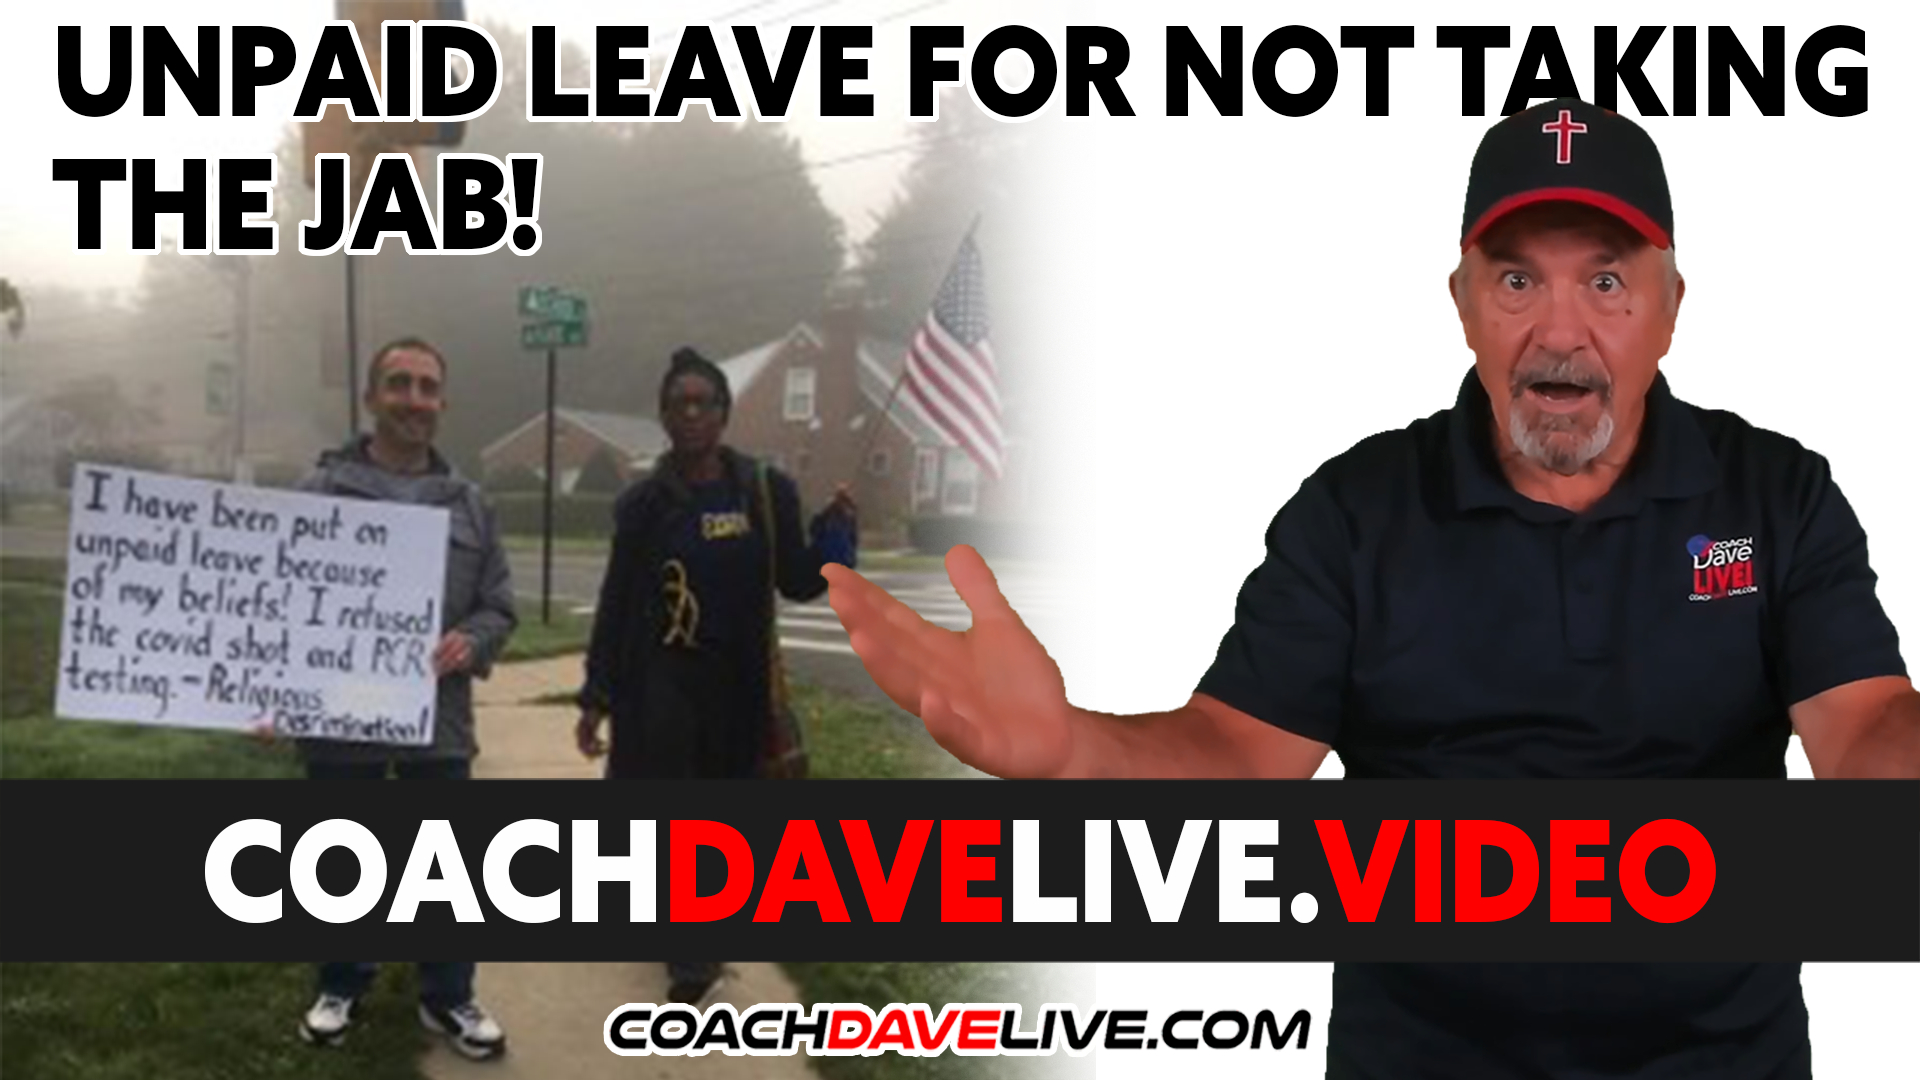 Coach Dave LIVE | 10-12-2021 | UNPAID LEAVE FOR NOT TAKING THE JAB!